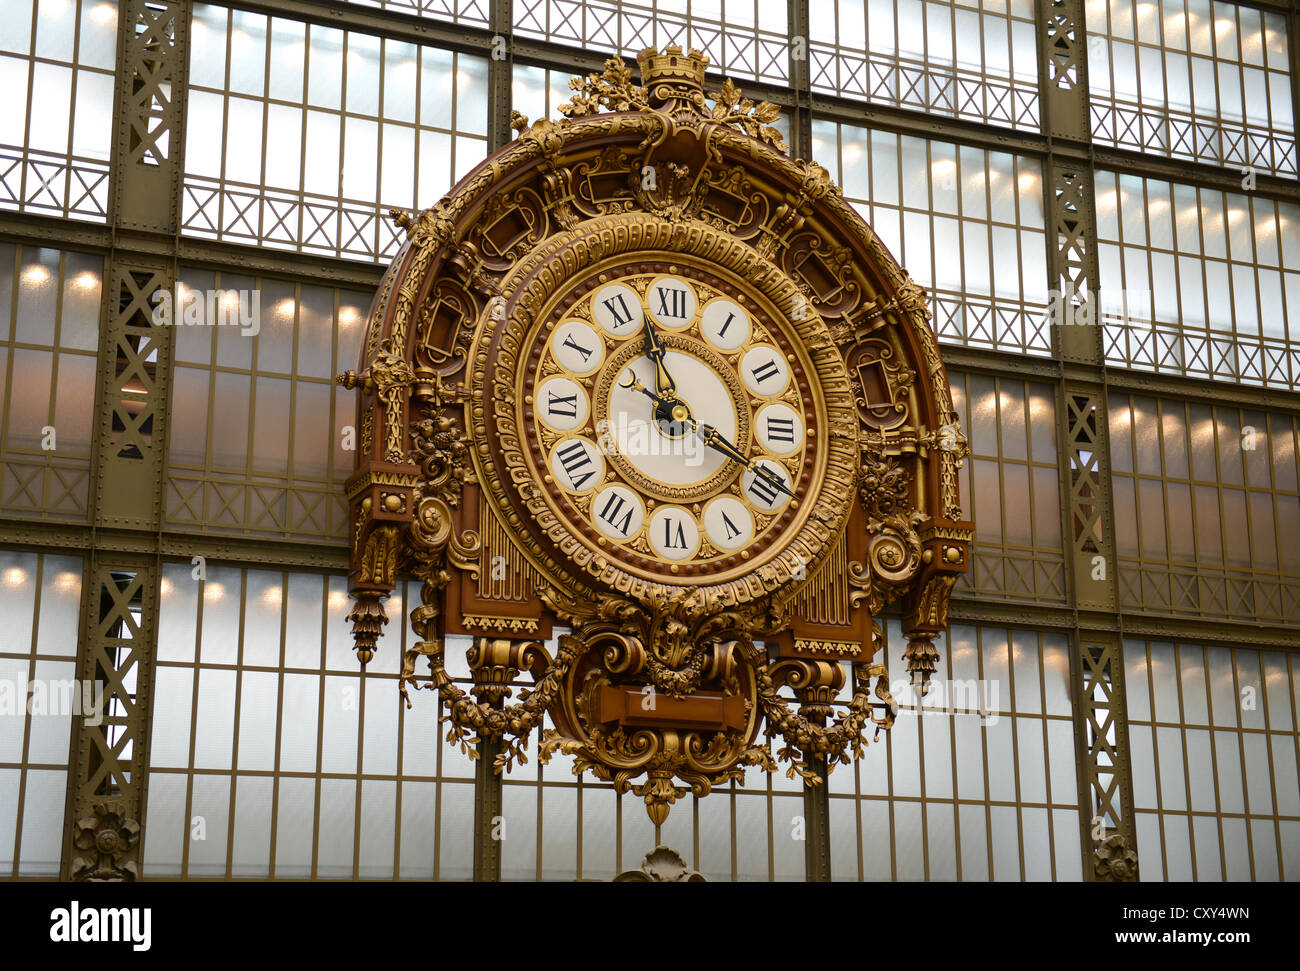 Musée d'Orsay, Paris, France, clock in the Musée d'Orsay, Paris, France - Stock Image